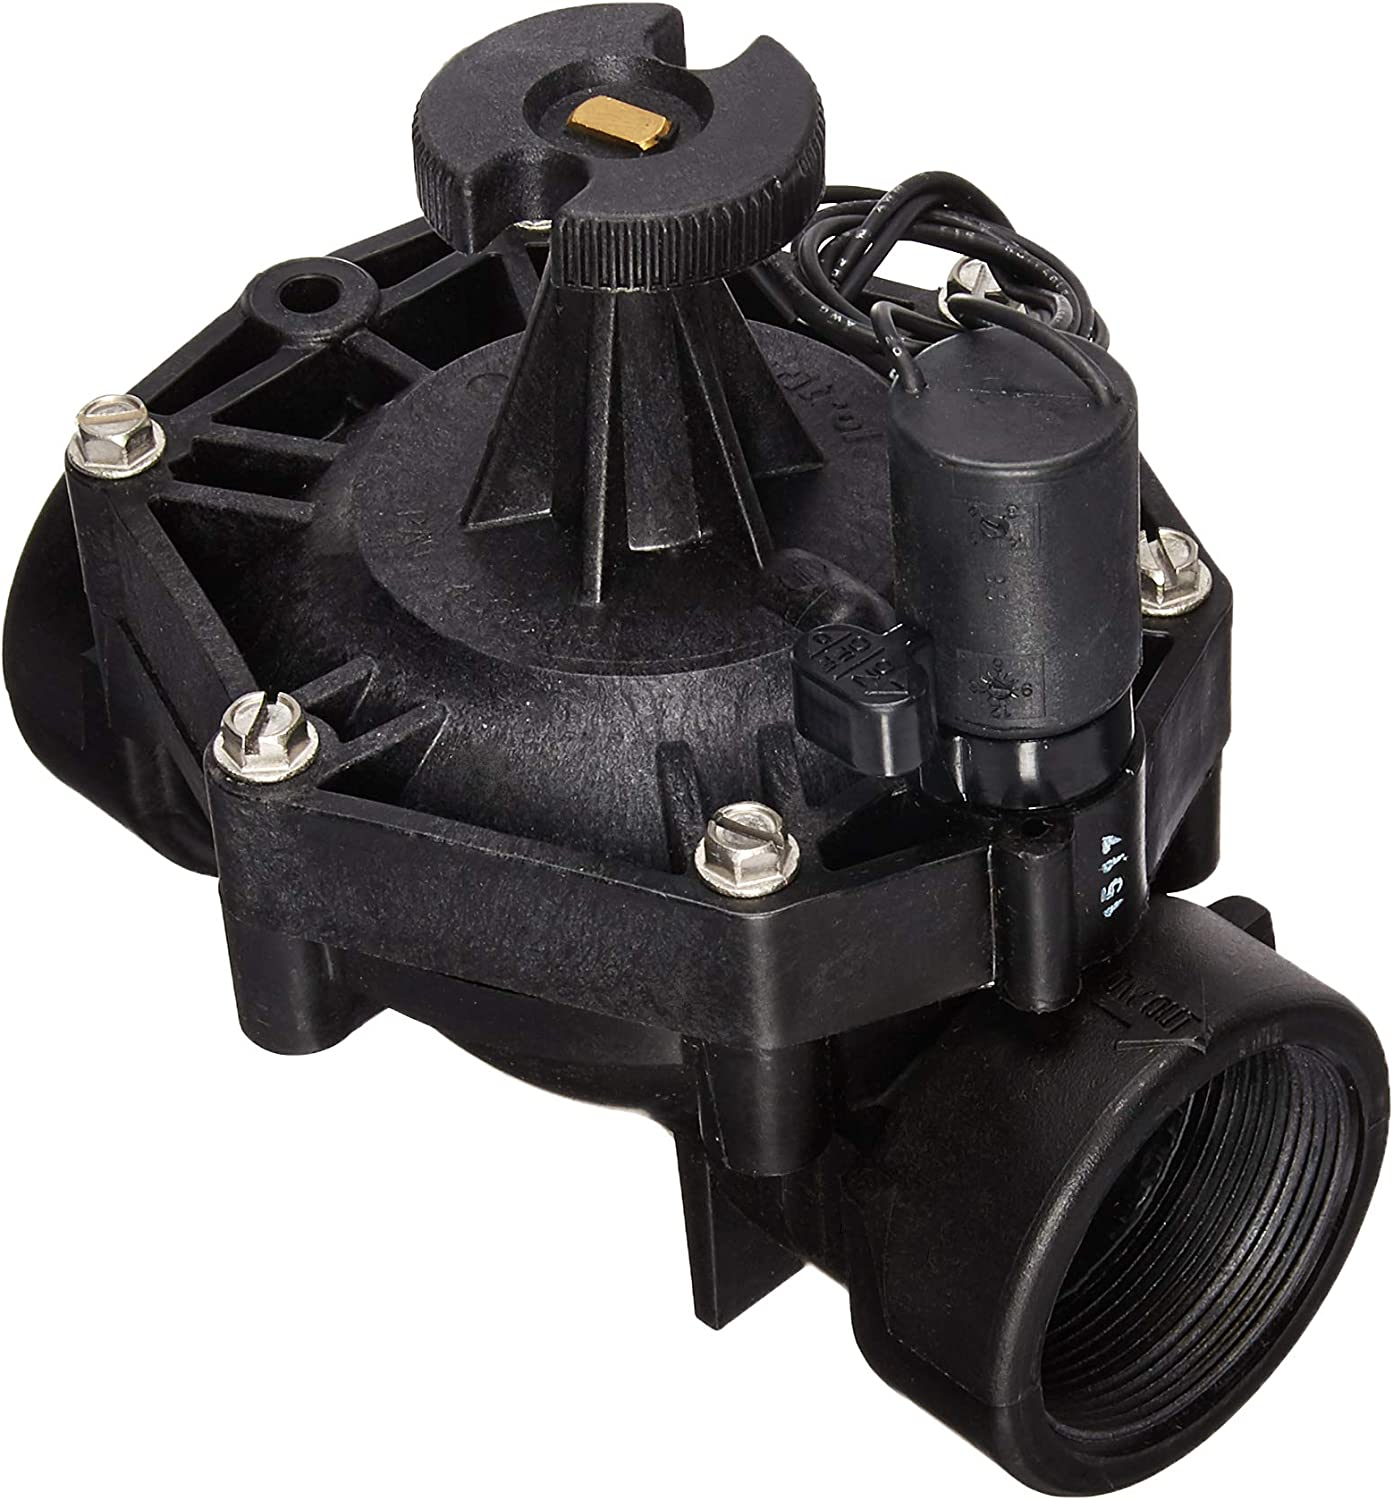 Irritrol 700-2 Ultra Flow Max 75% OFF Valve Threaded NPT with Control Max 54% OFF